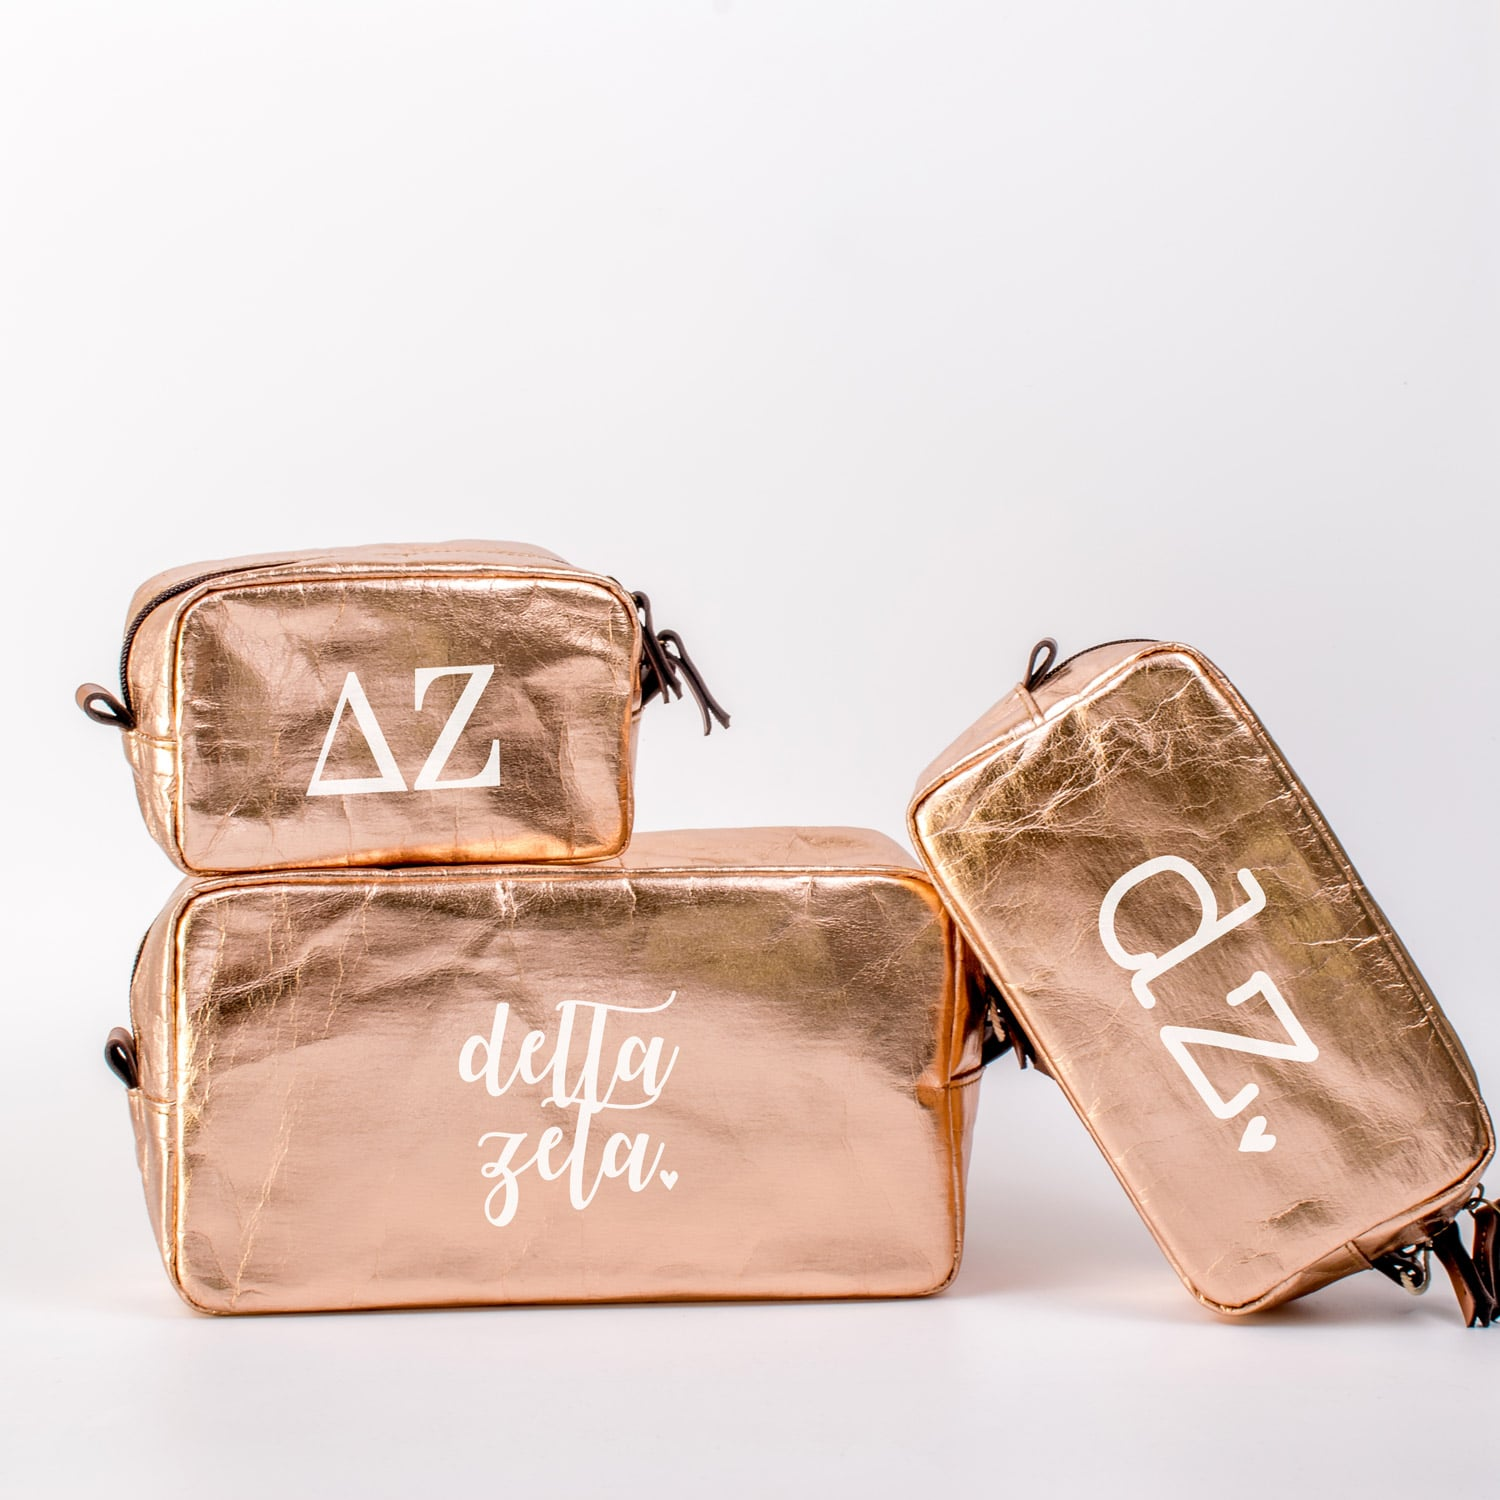 Delta Zeta Cosmetic Bag Set